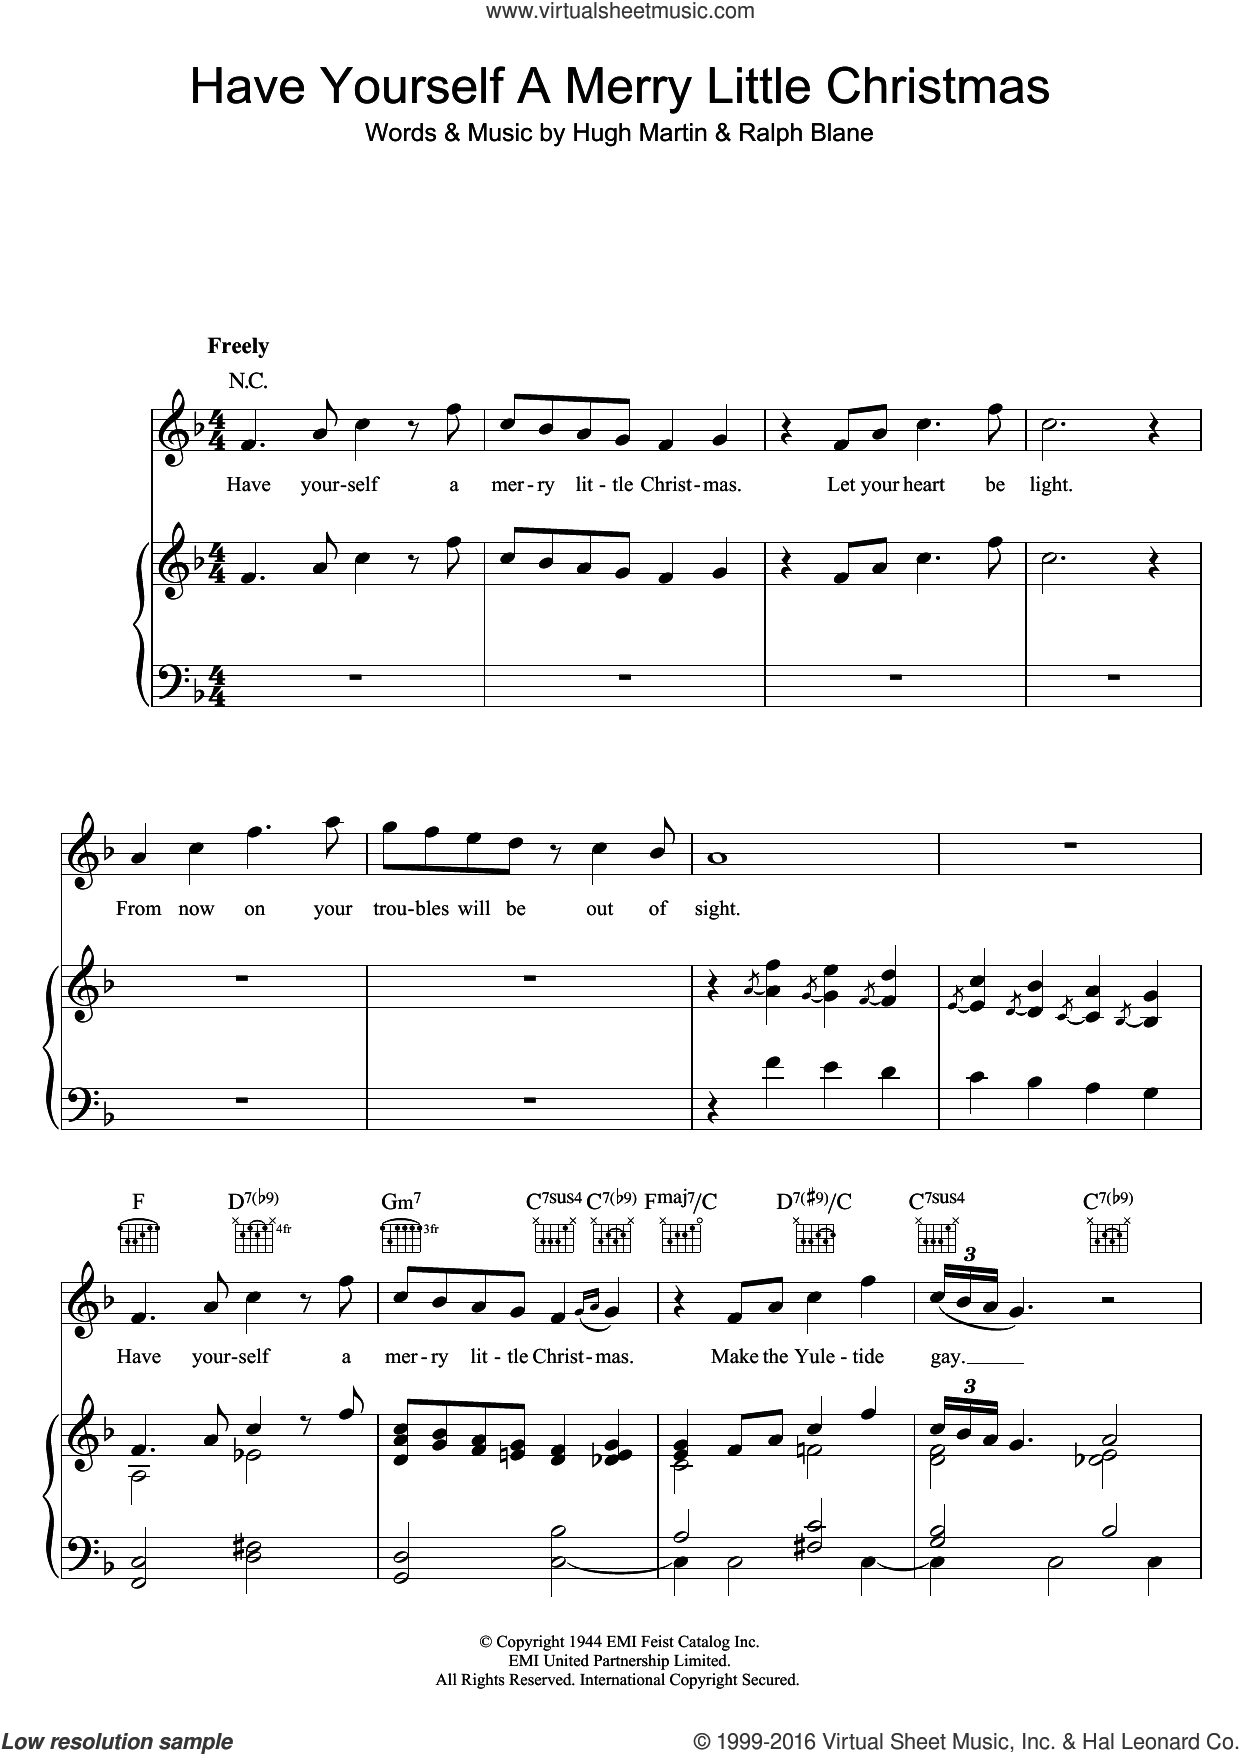 Have Yourself A Merry Little Christmas sheet music for voice, piano or guitar by Hugh Martin, Frank Sinatra, Sam Smith and Ralph Blane. Score Image Preview.